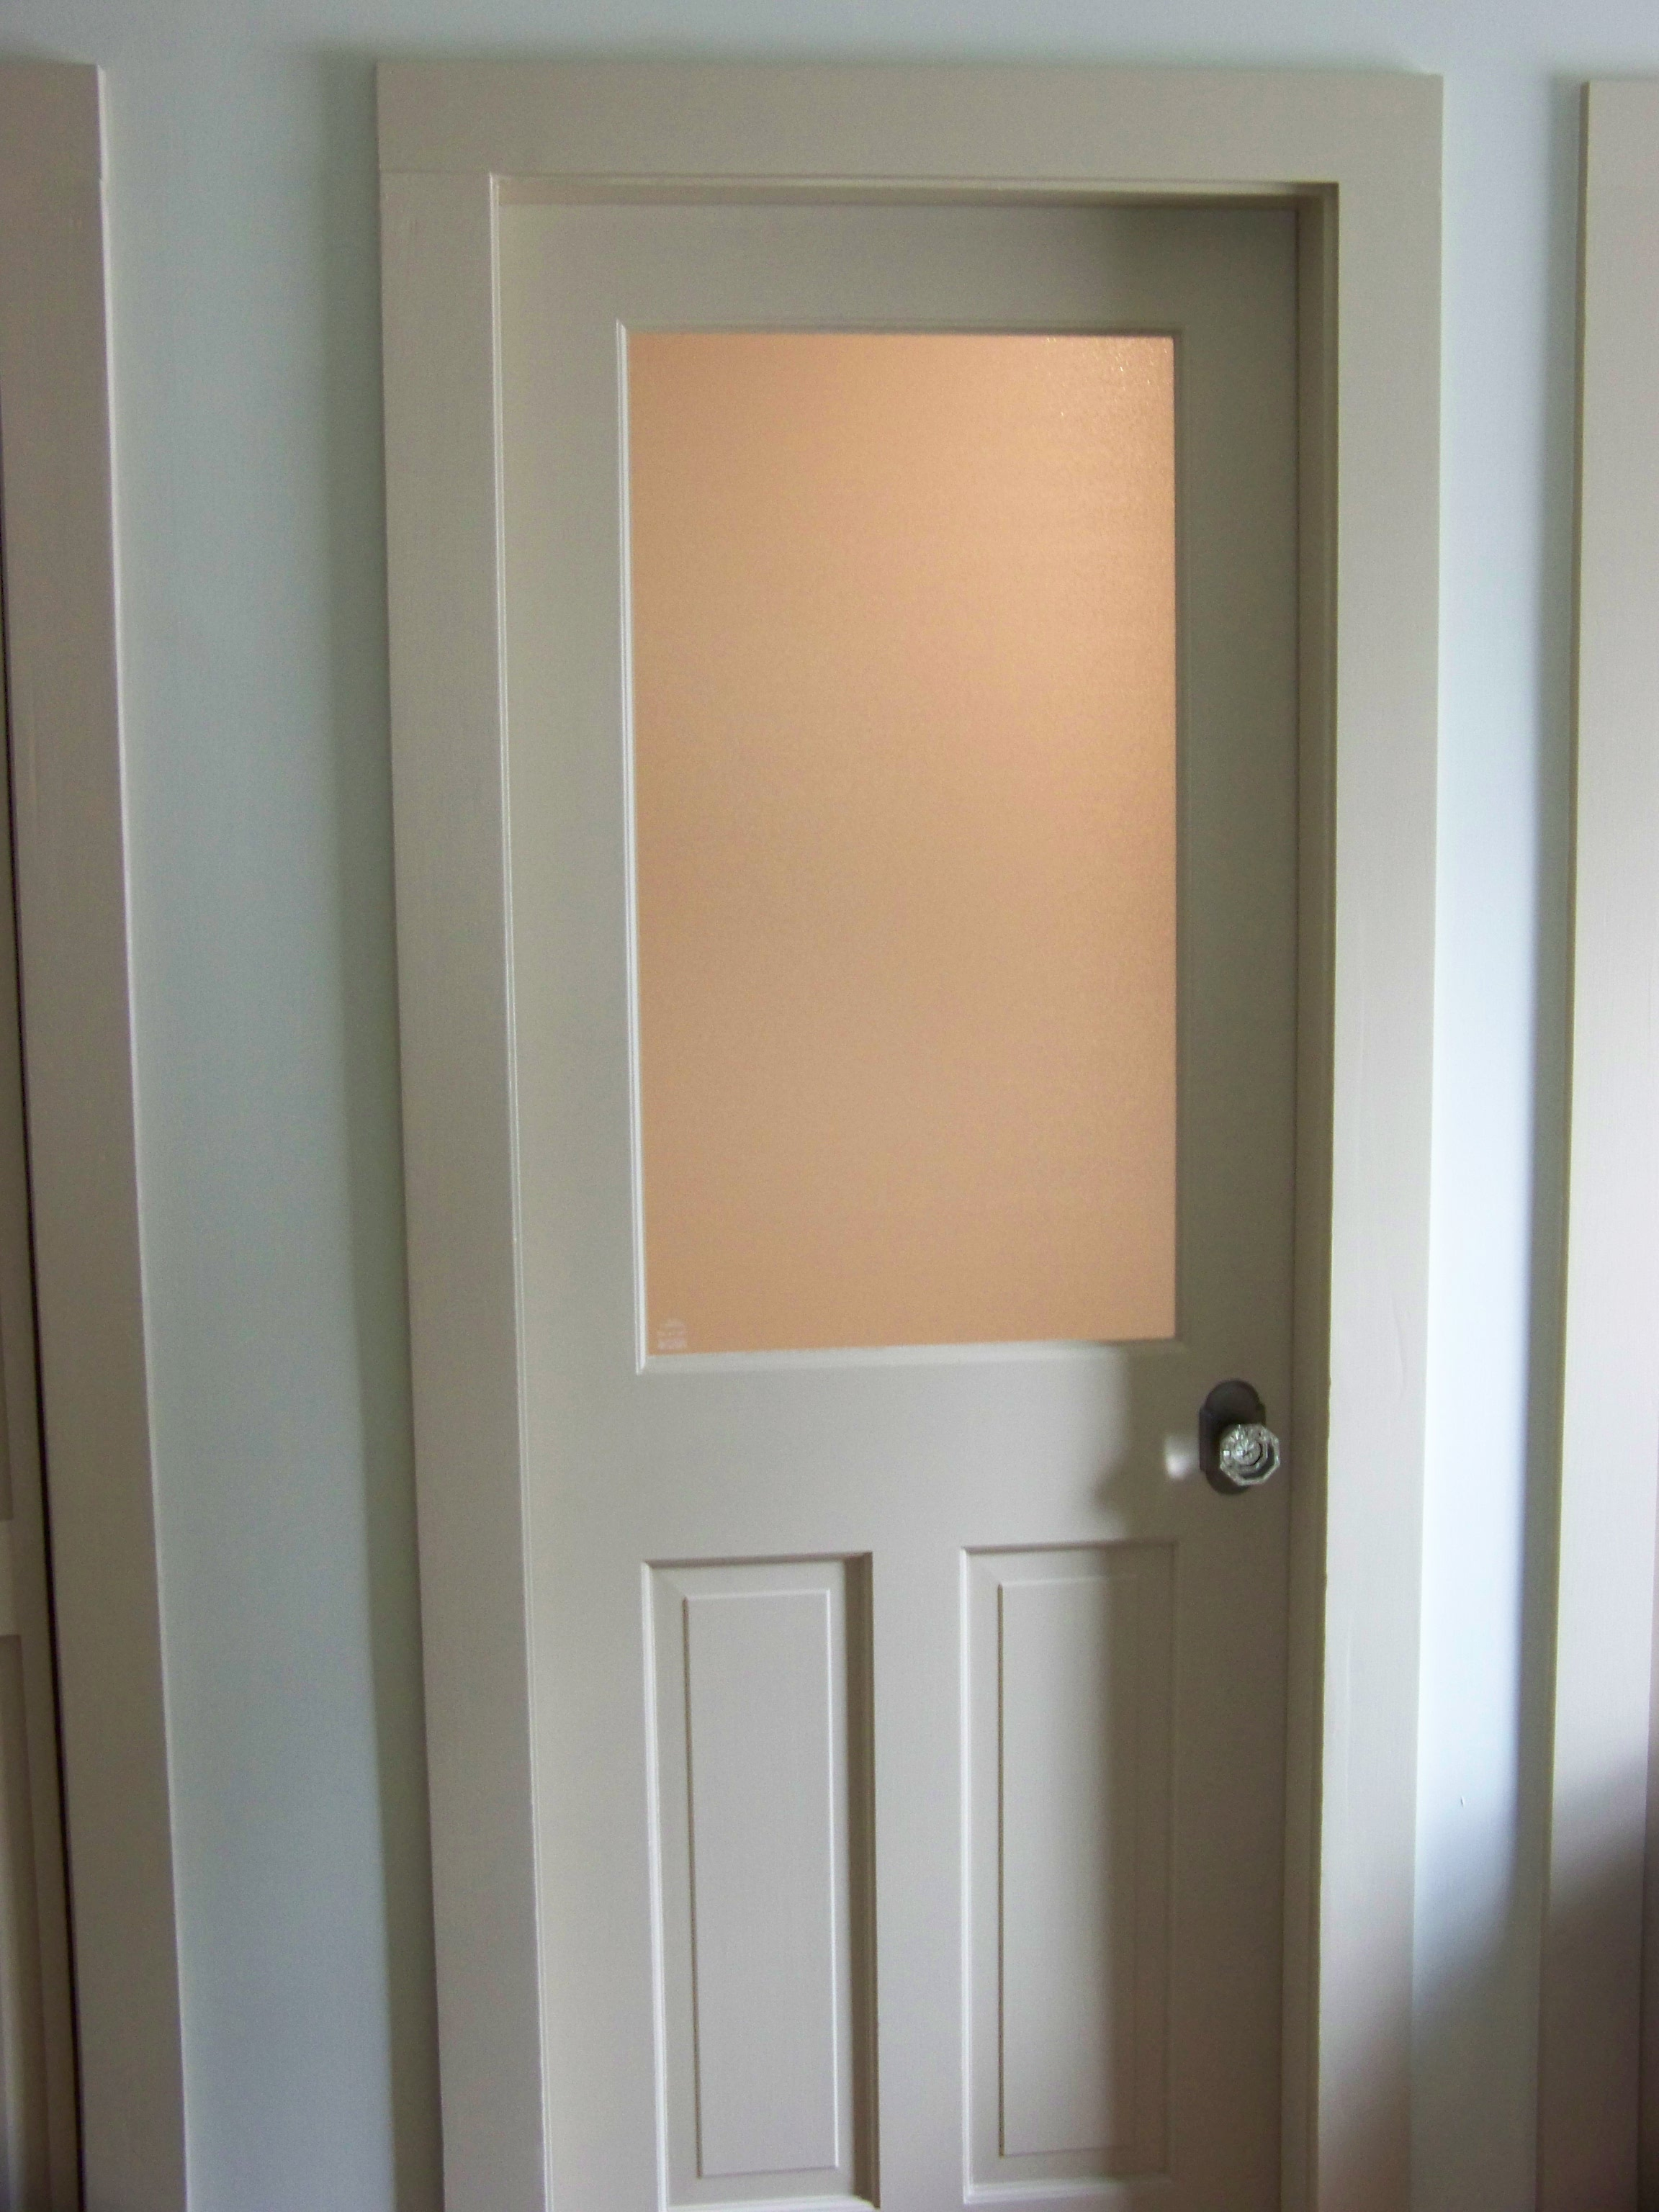 3072 #8B6340 Customized Glass Panel Door RI KMD Custom Woodworking (401) 639  image Doors Half Glass 42032304